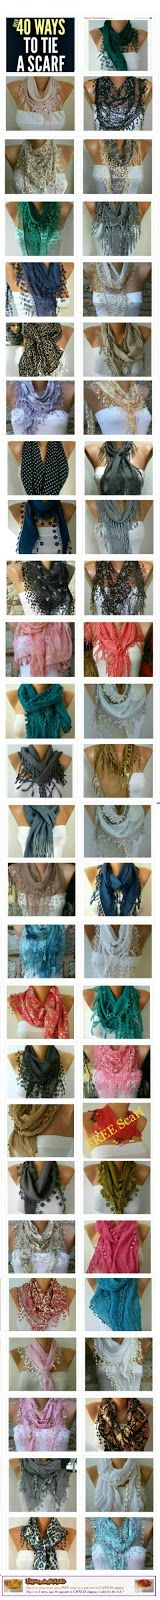 Scarf - over 40 ways